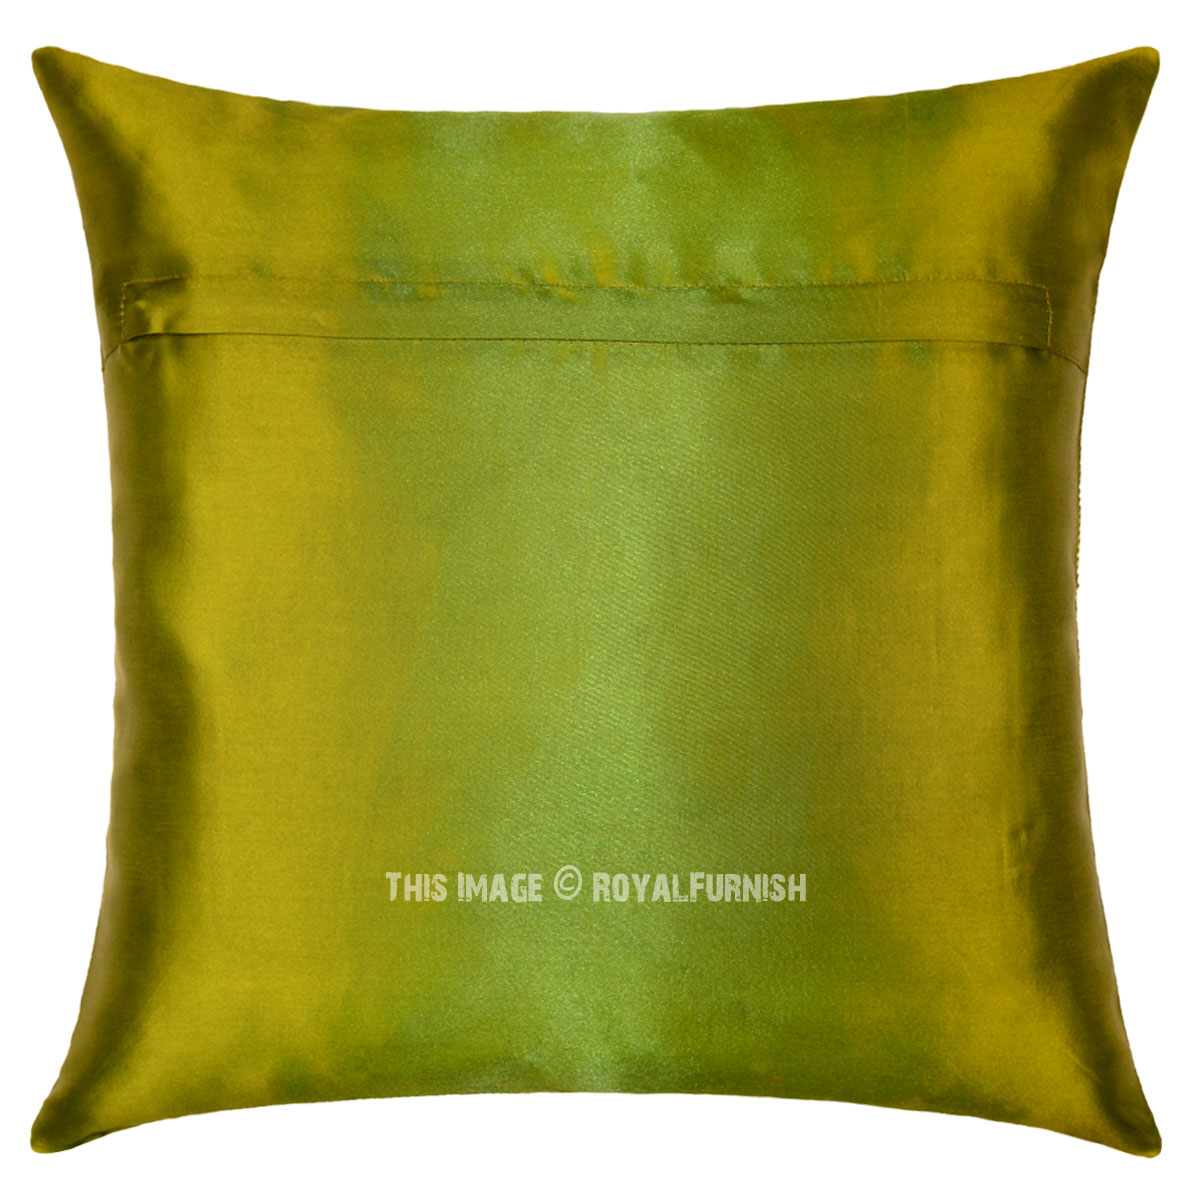 Decorative Lumbar Pillows Green : Green Floral Medallion Circle 16X16 Decorative Silk Throw Pillow Case 16X16 - RoyalFurnish.com